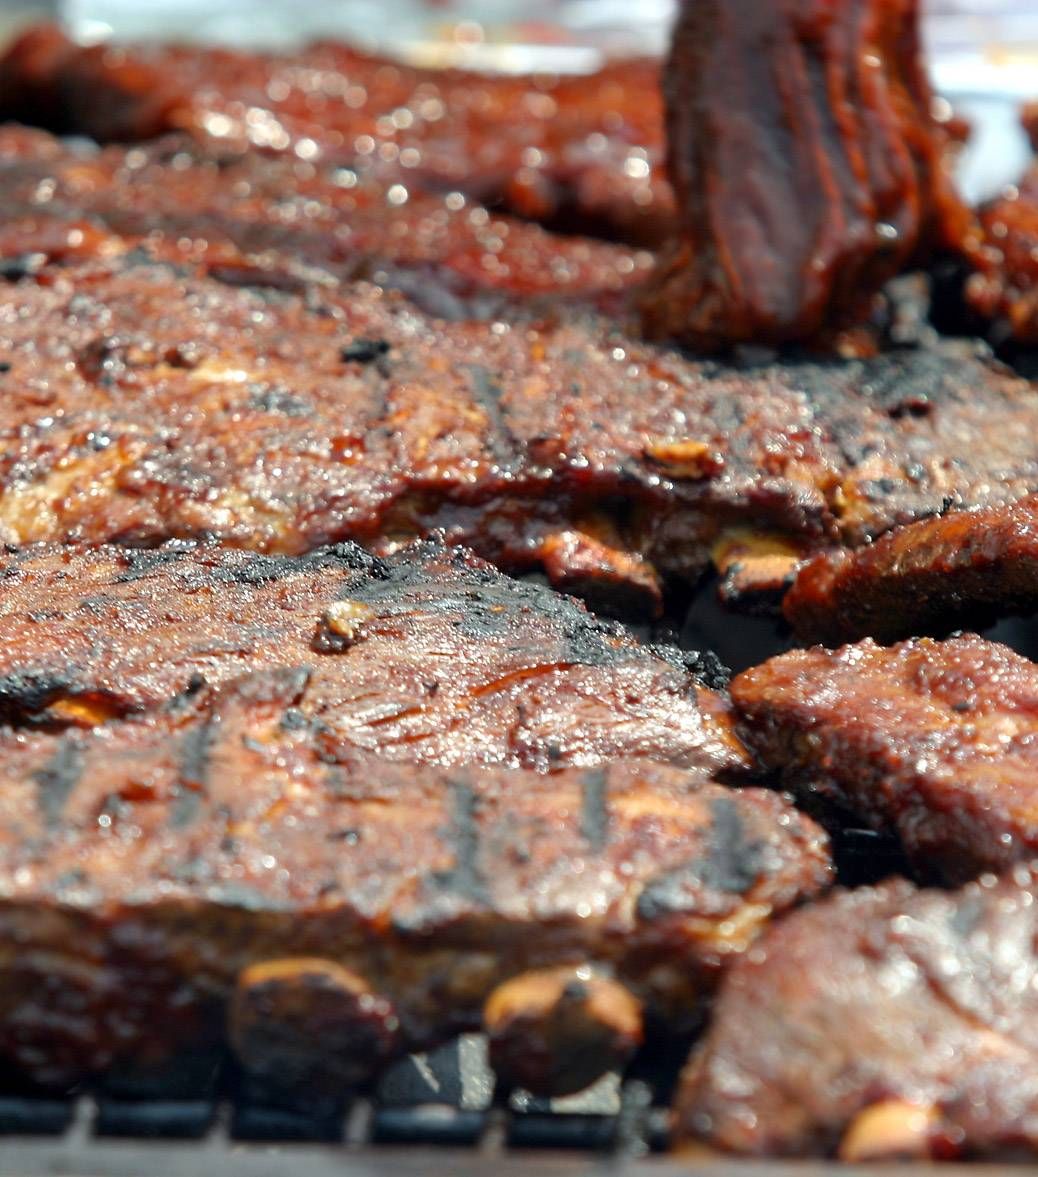 17 facts about the food at Naperville's Ribfest